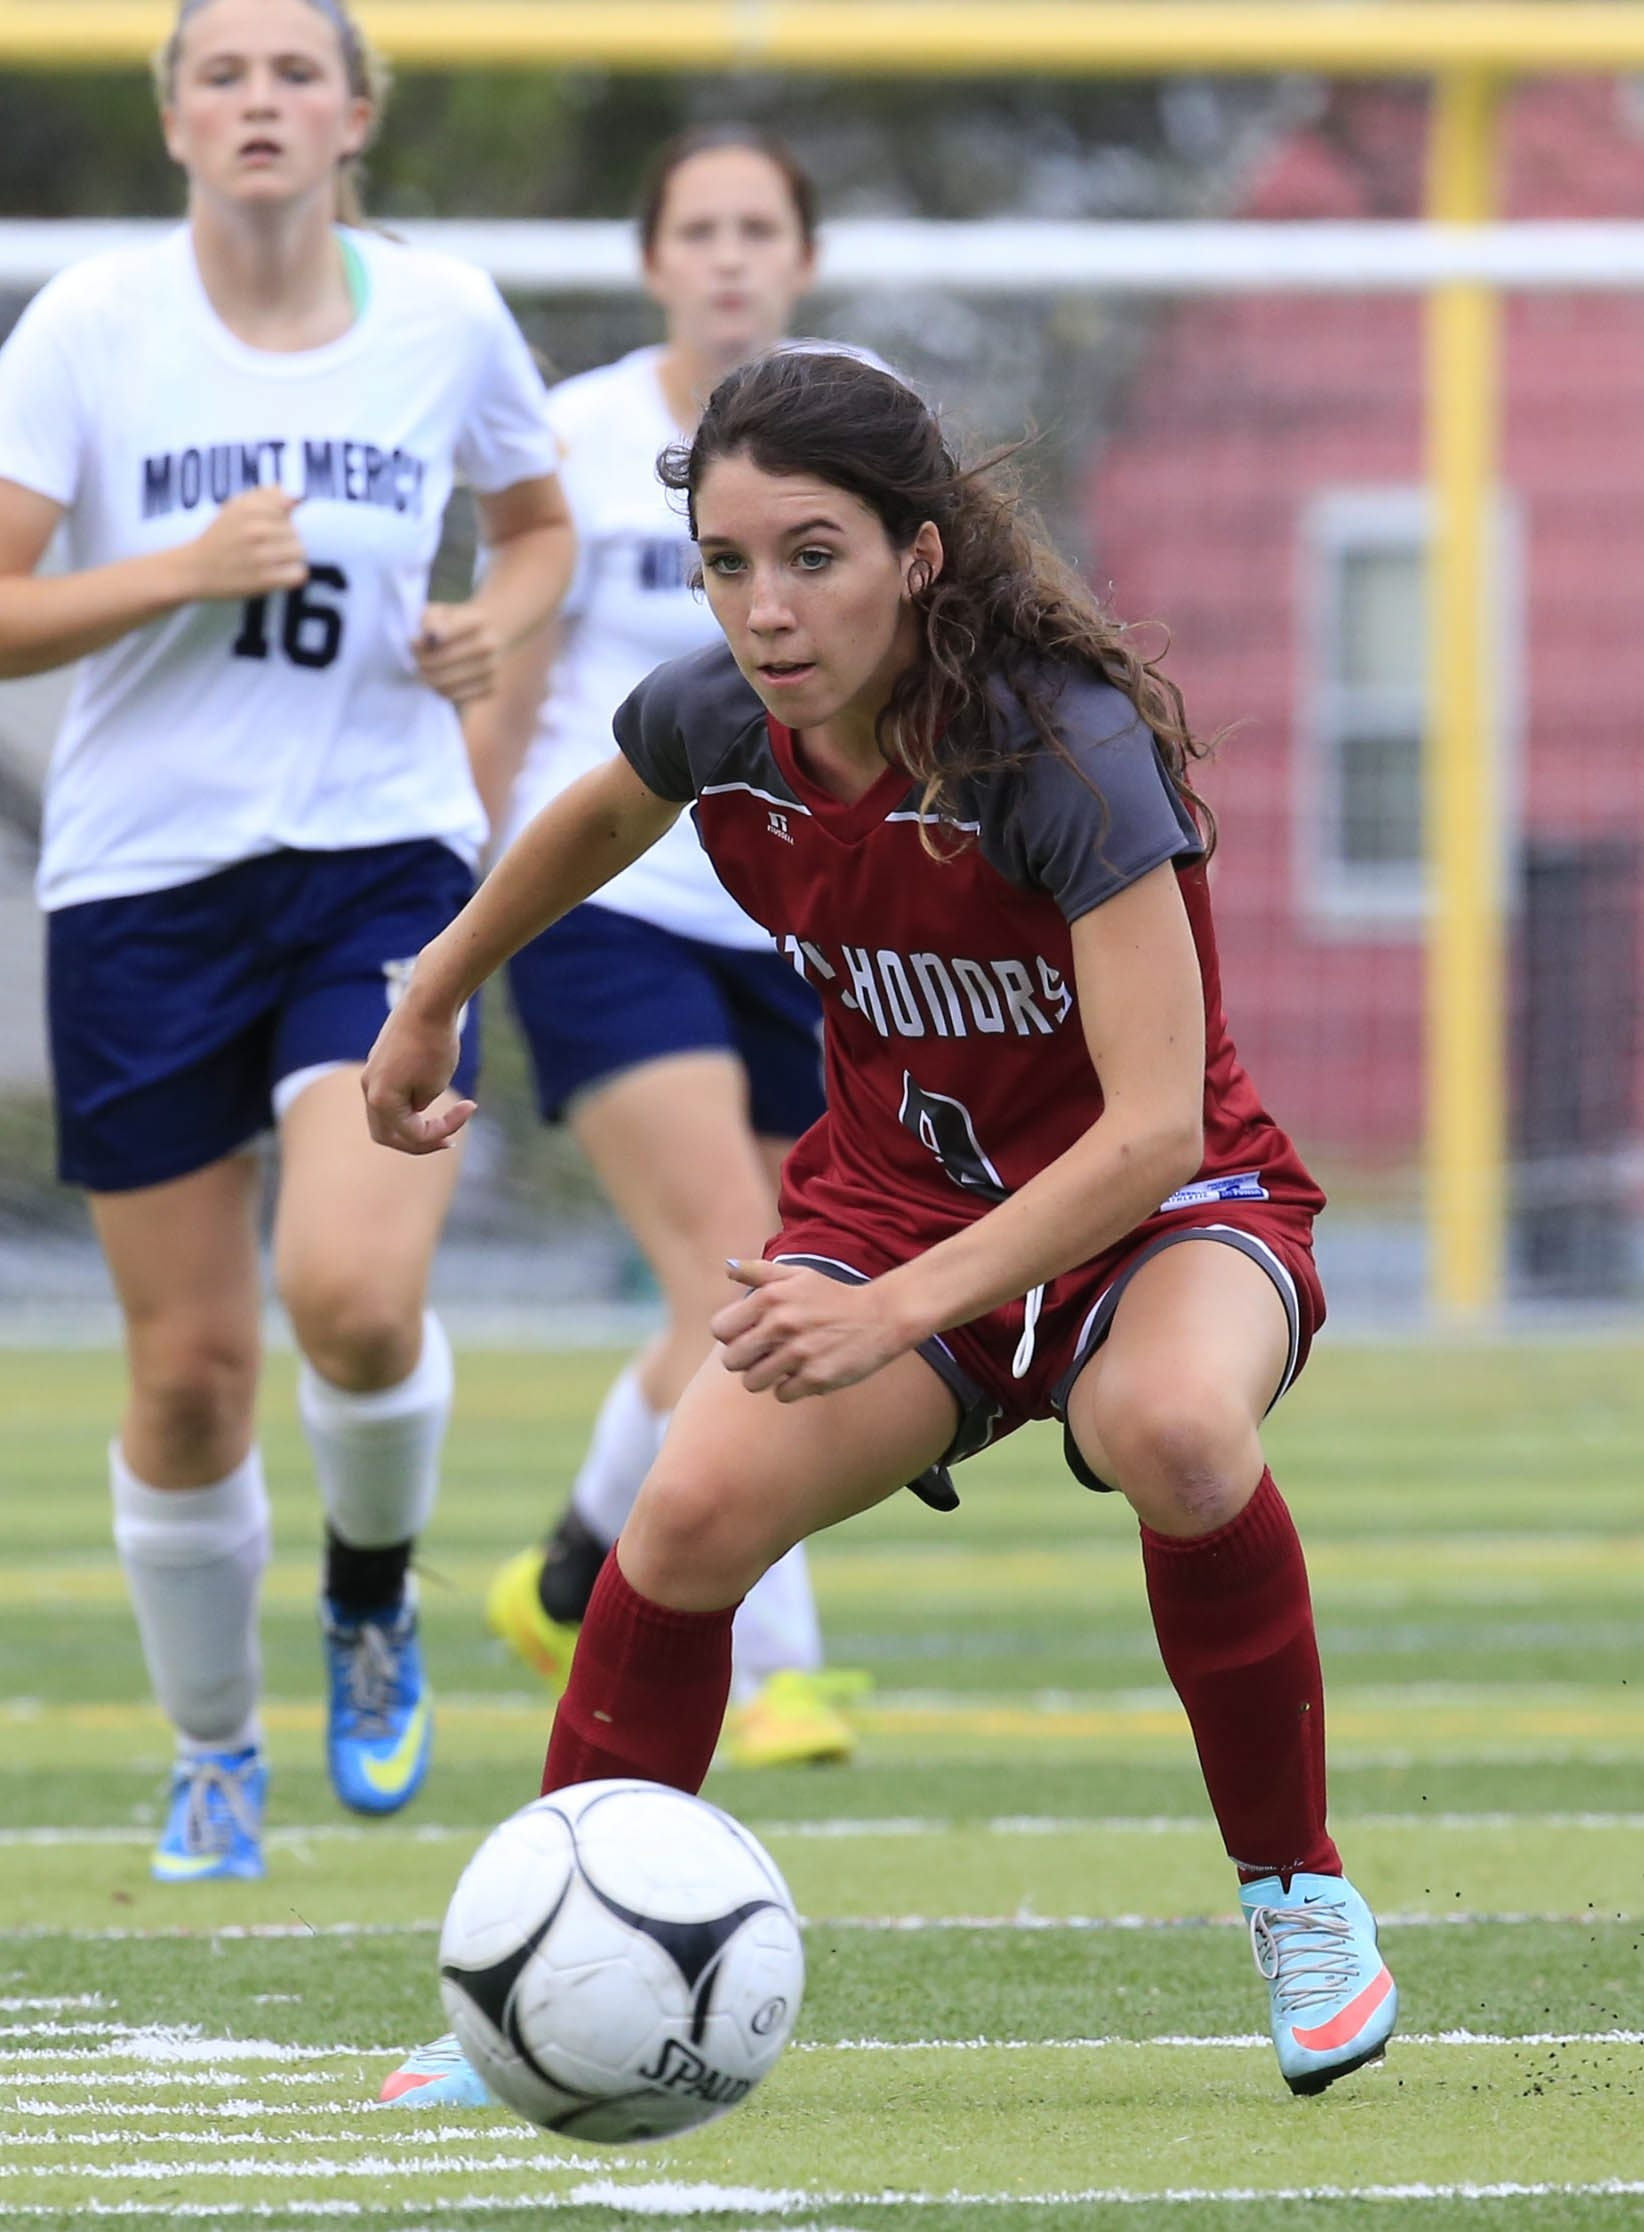 City Honors soccer player Molly Petrucci in action against Mount Mercy at Mulroy Park  on Friday, Sept. 18, 2015.  (Harry Scull Jr./Buffalo News)